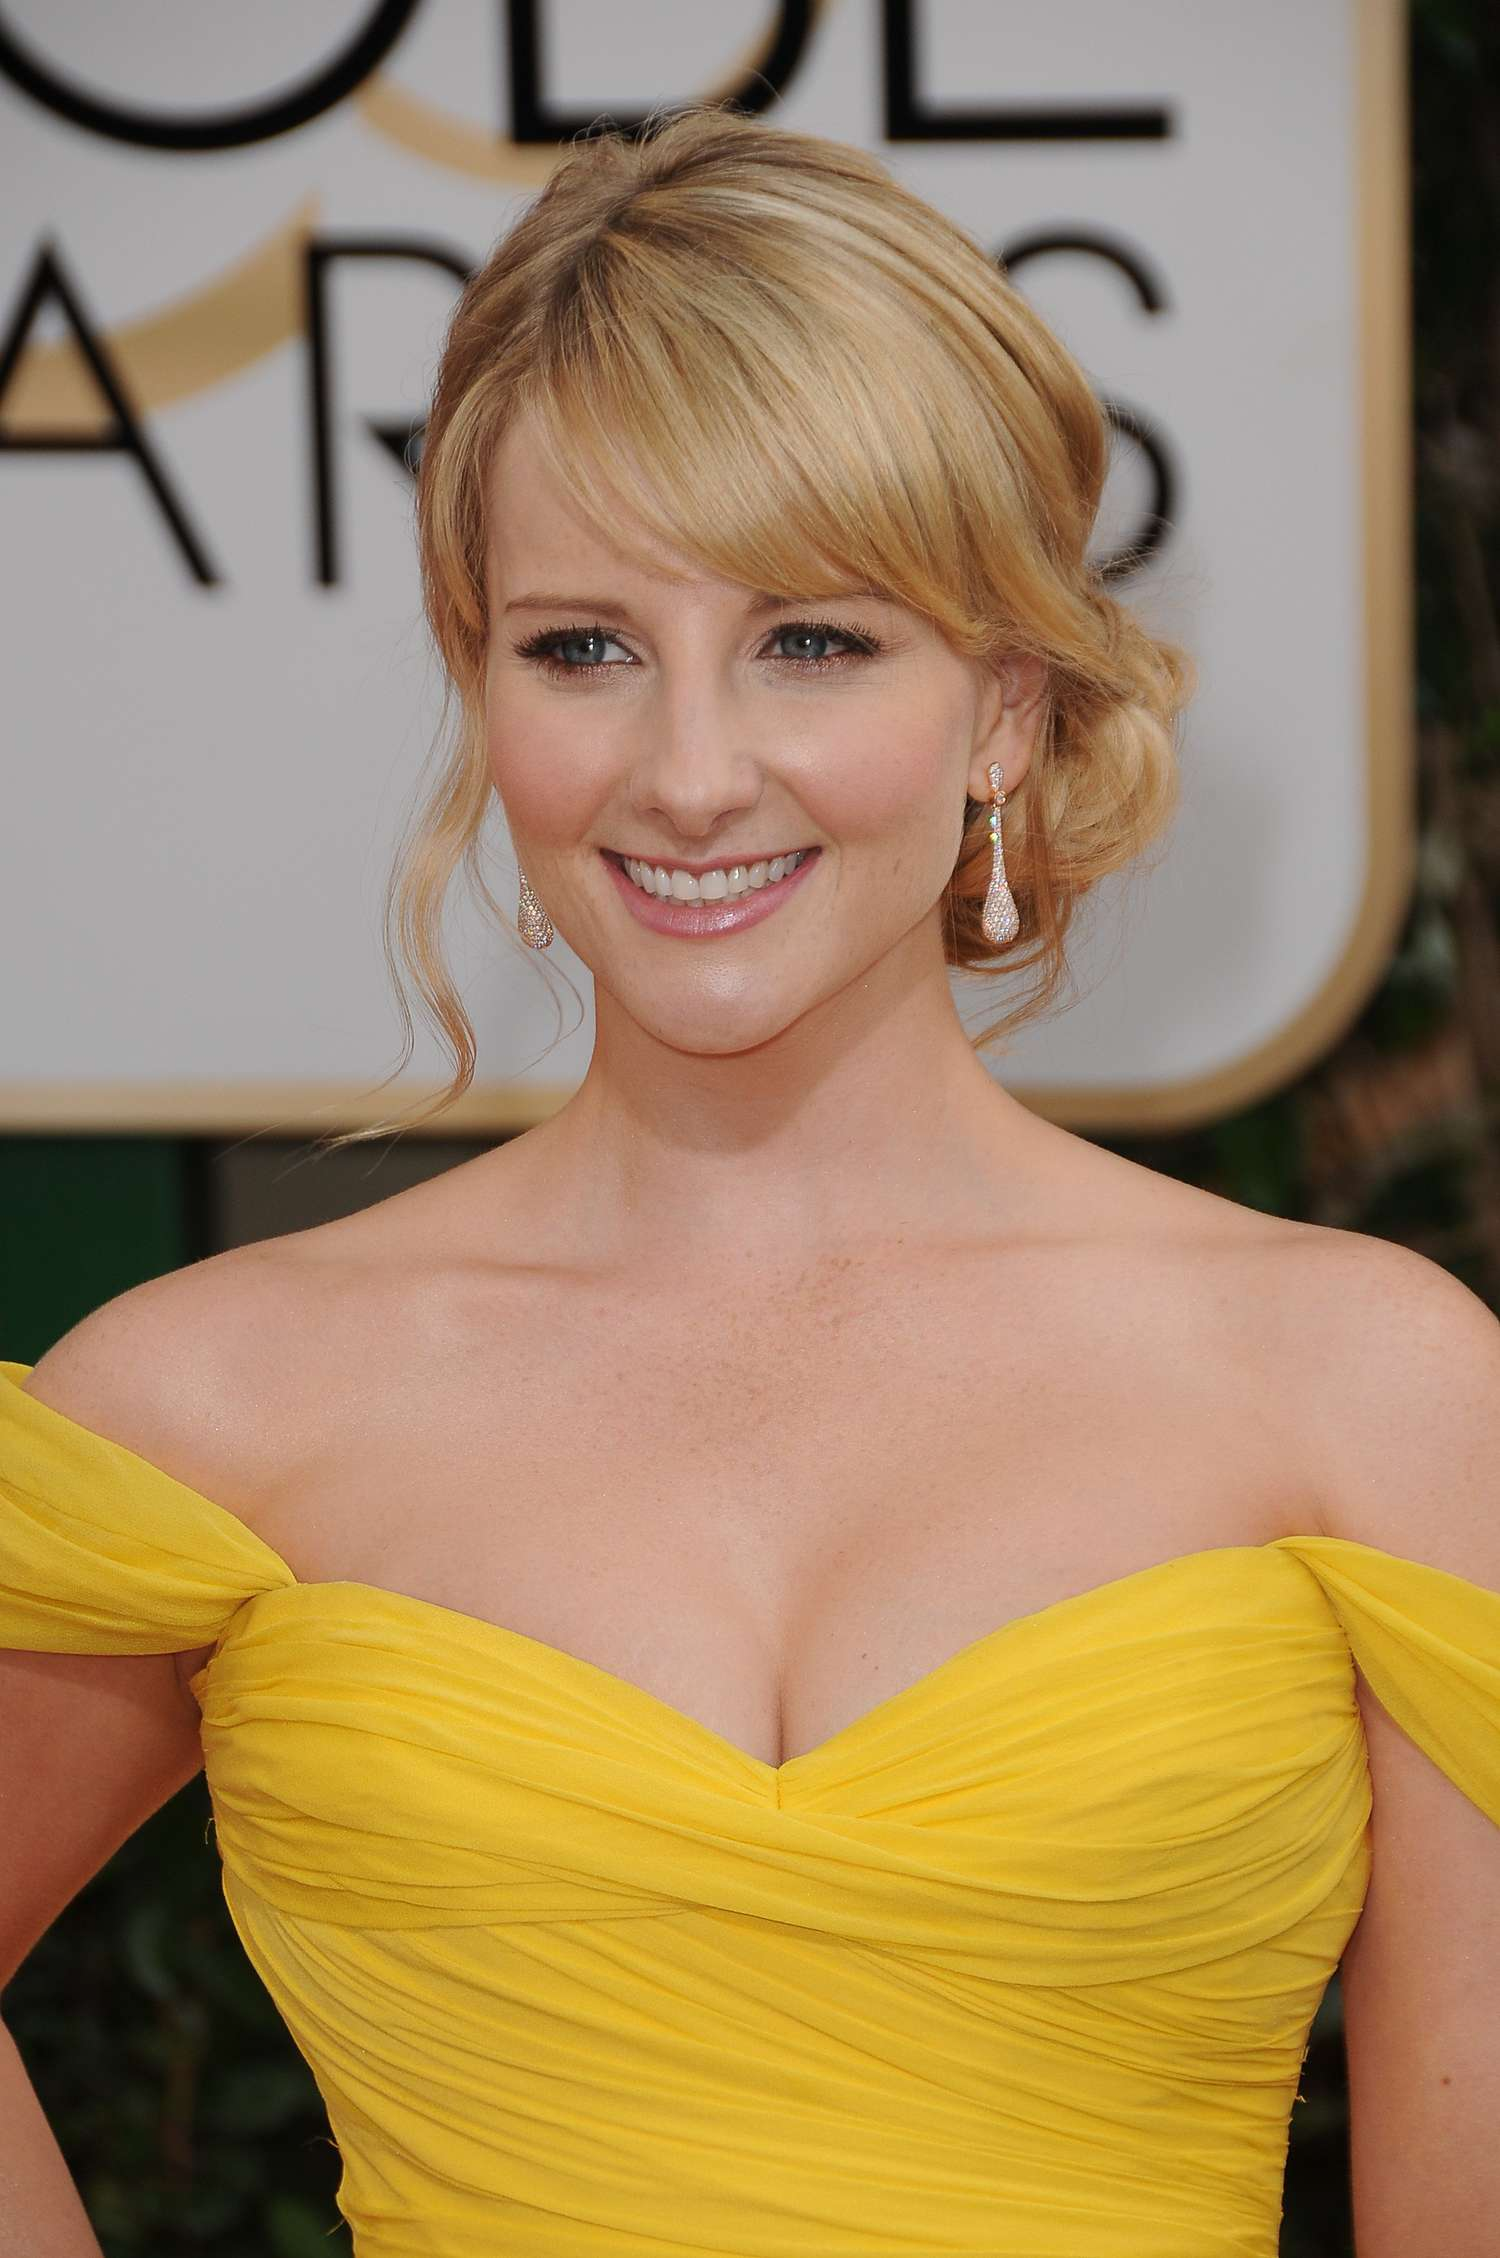 Nude pictures of melissa rauch